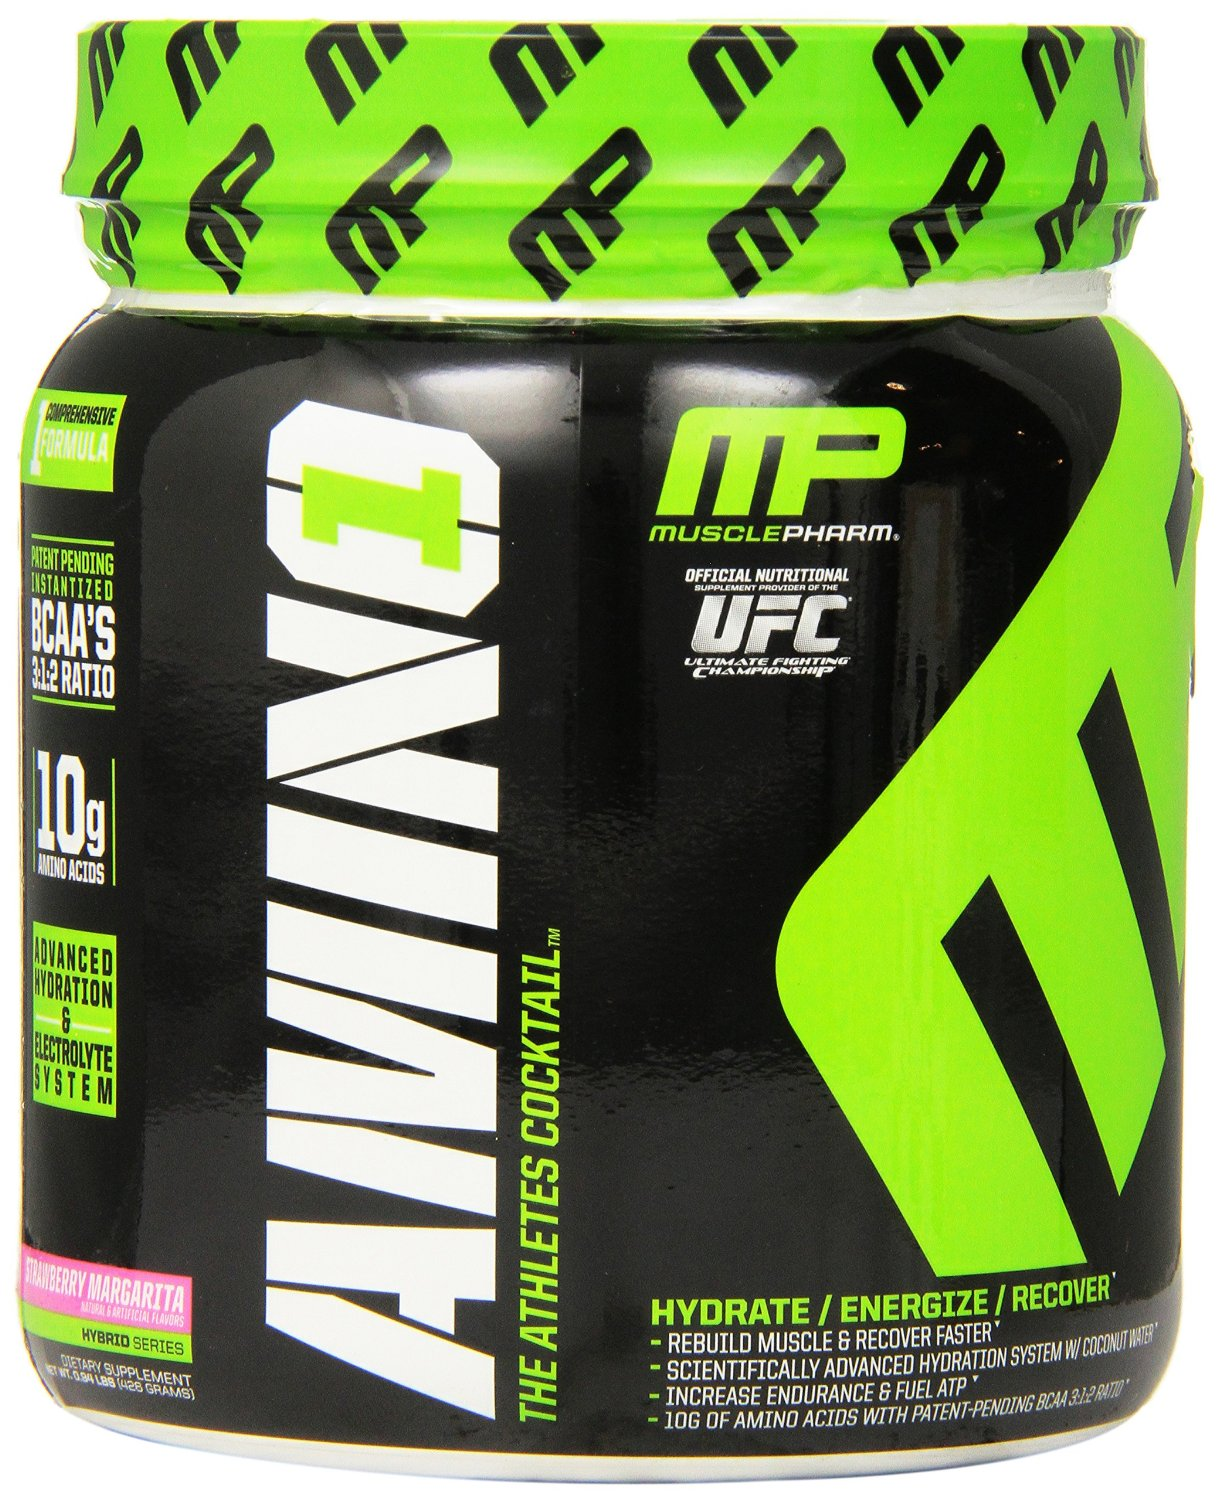 Amino 1, 32 Servings, Strawberry Margarita Flavor 713757860222